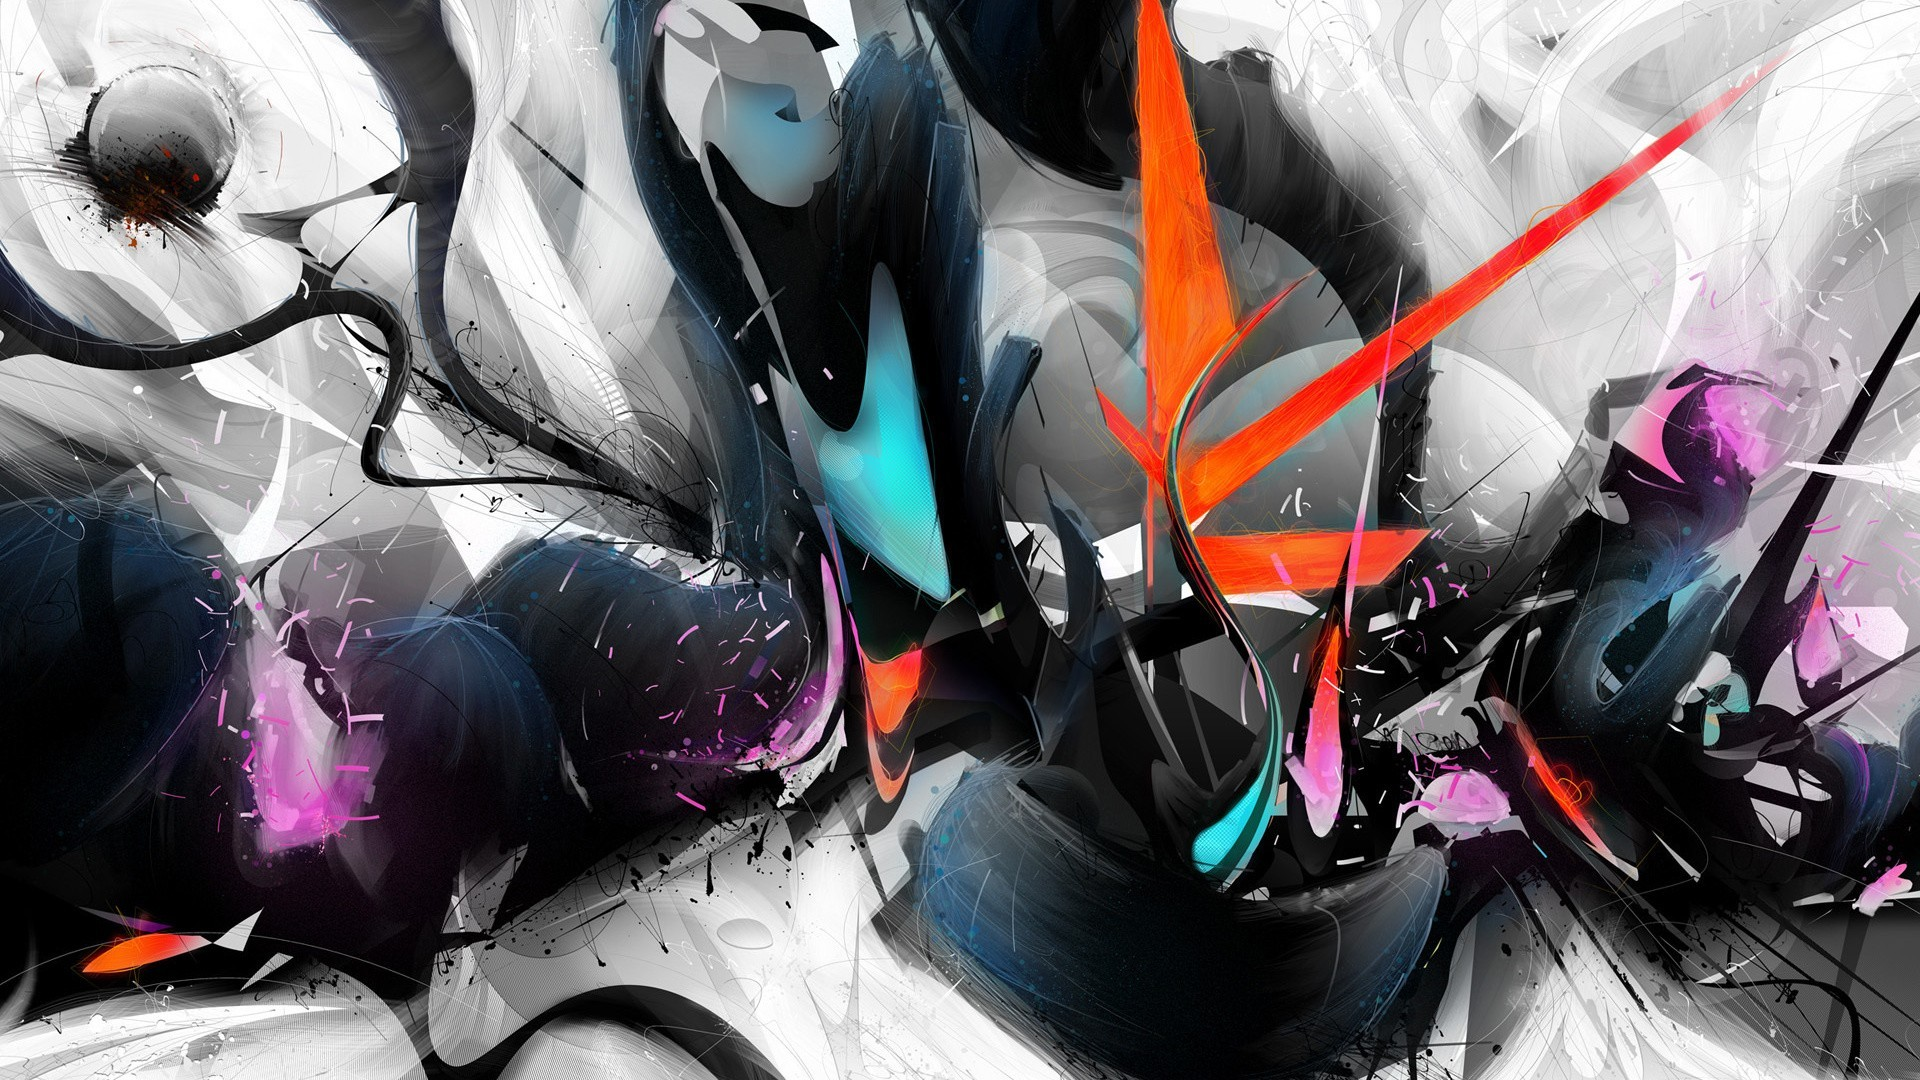 Cool Wallpapers Abstract Designs HD Wallpaper